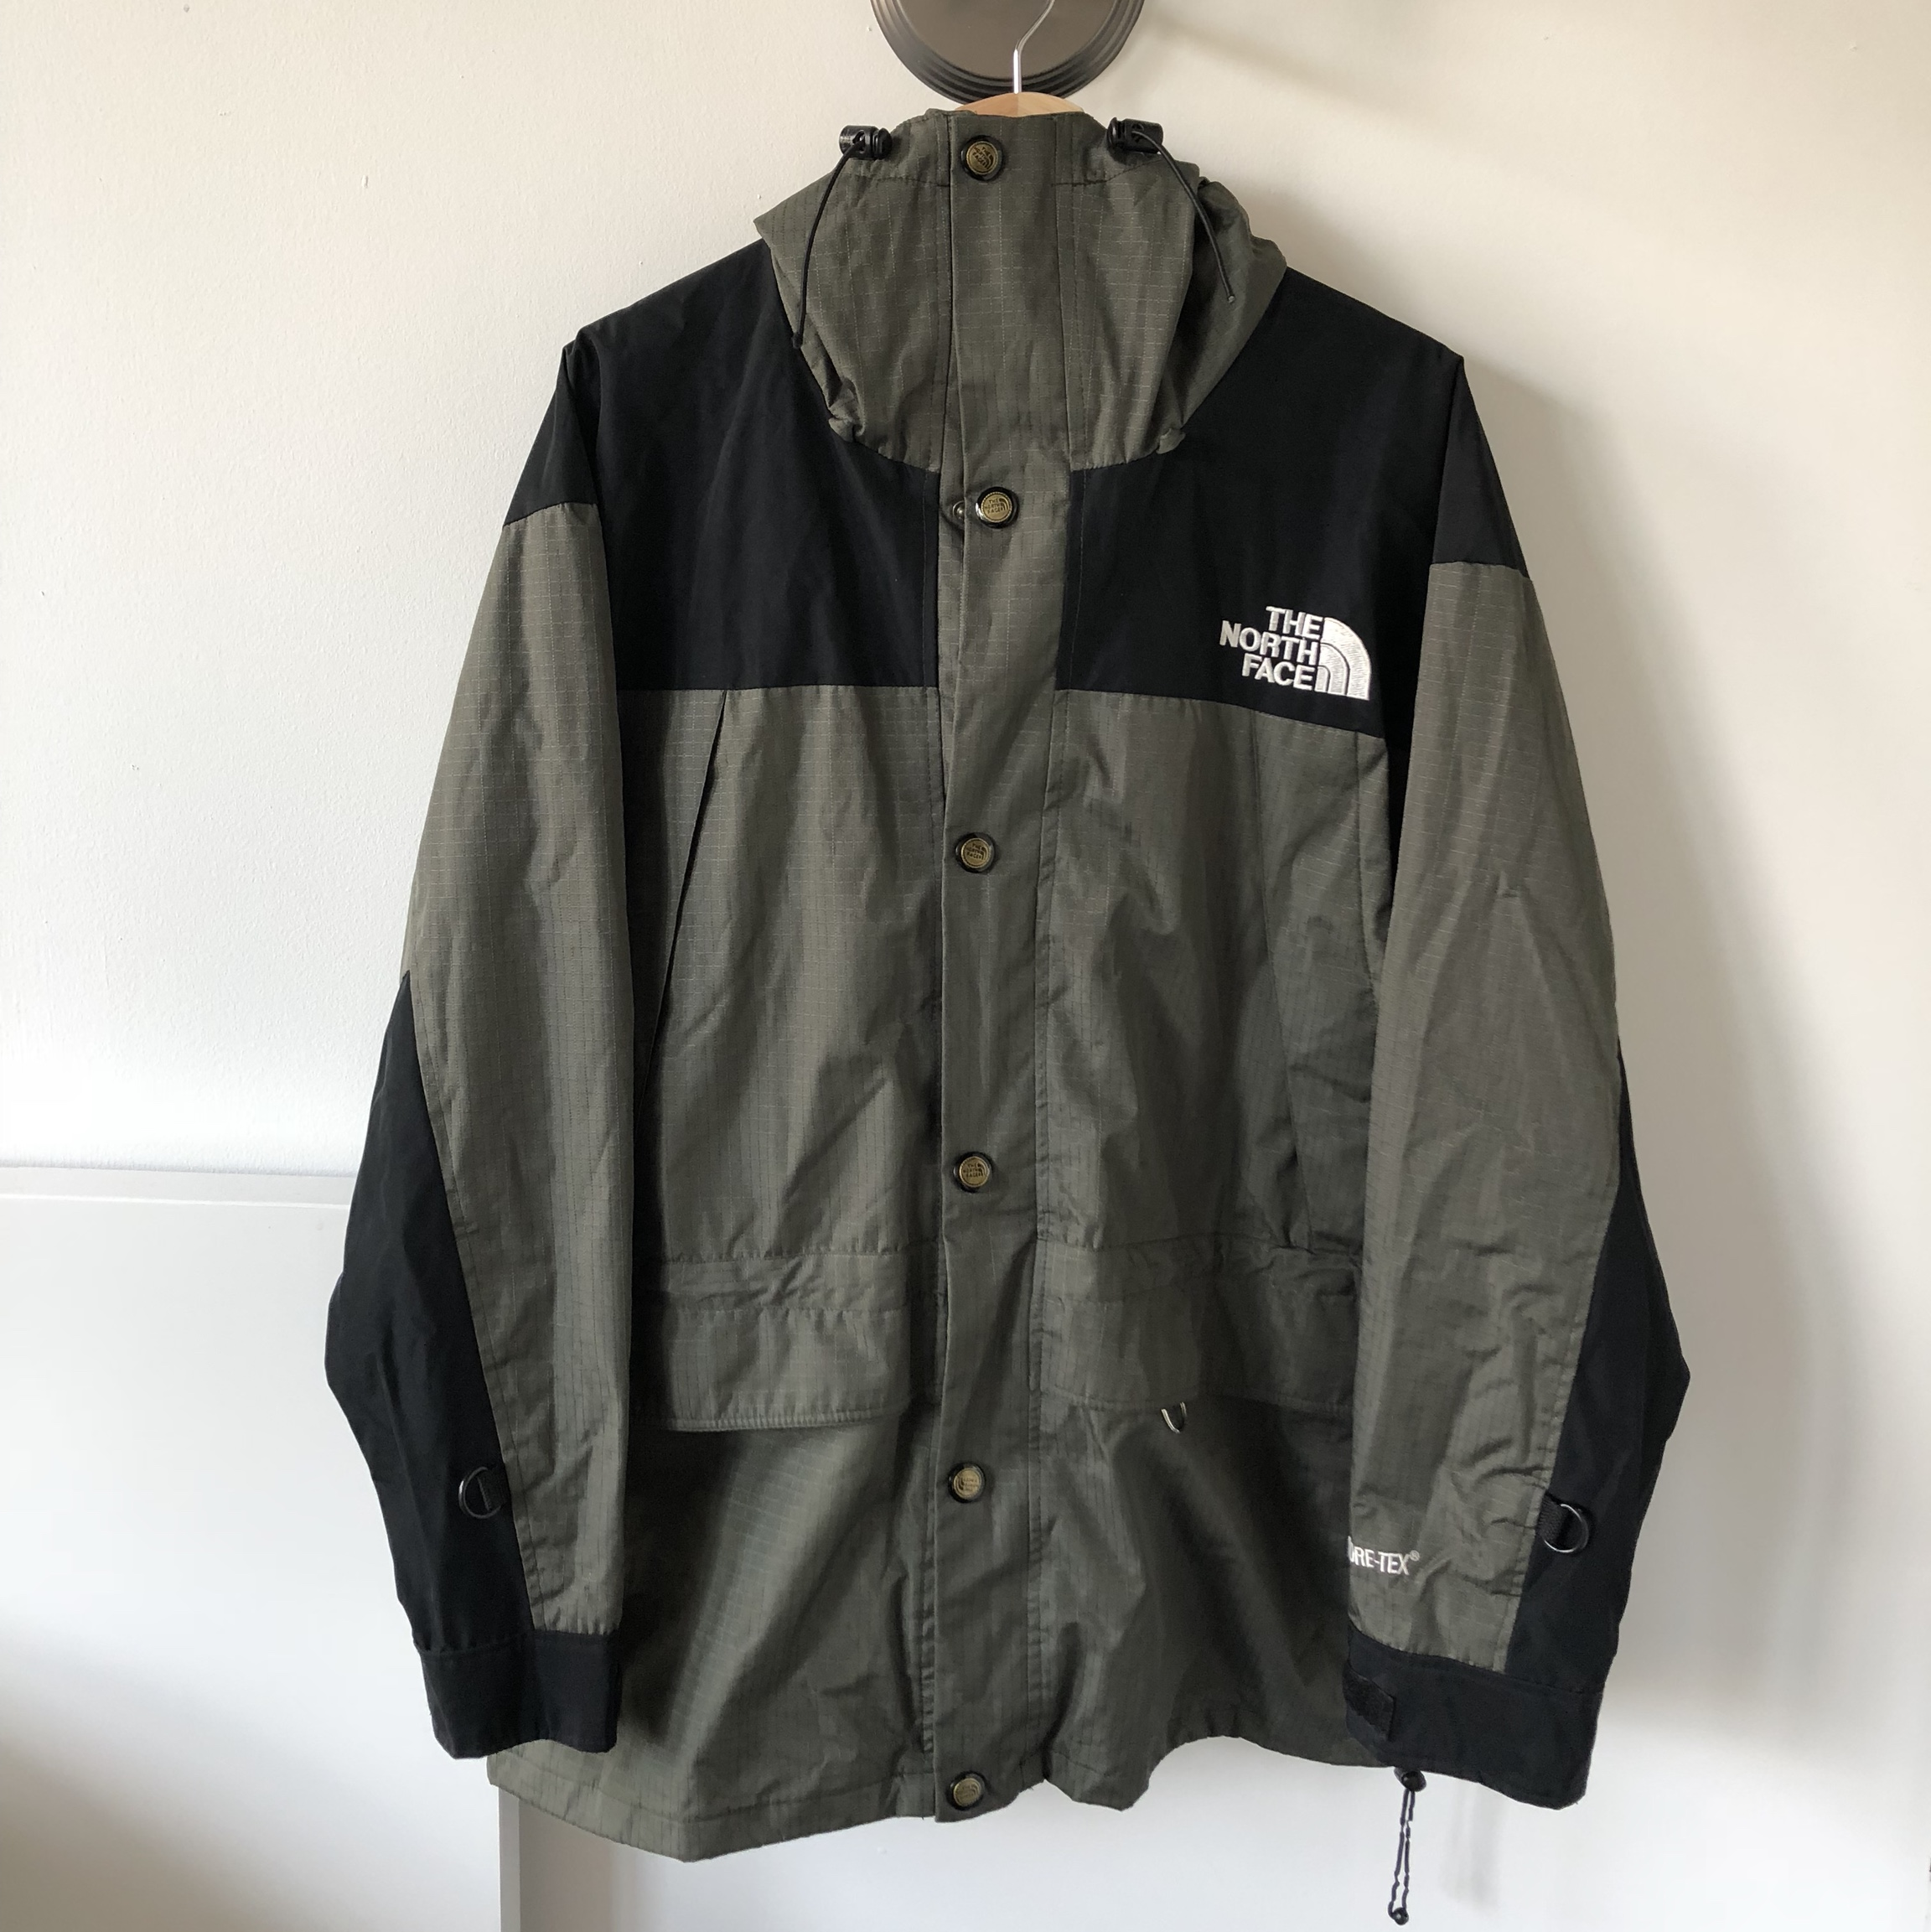 3fb41ec7073 Vintage 90s the north face mountain guide jacket... - Depop